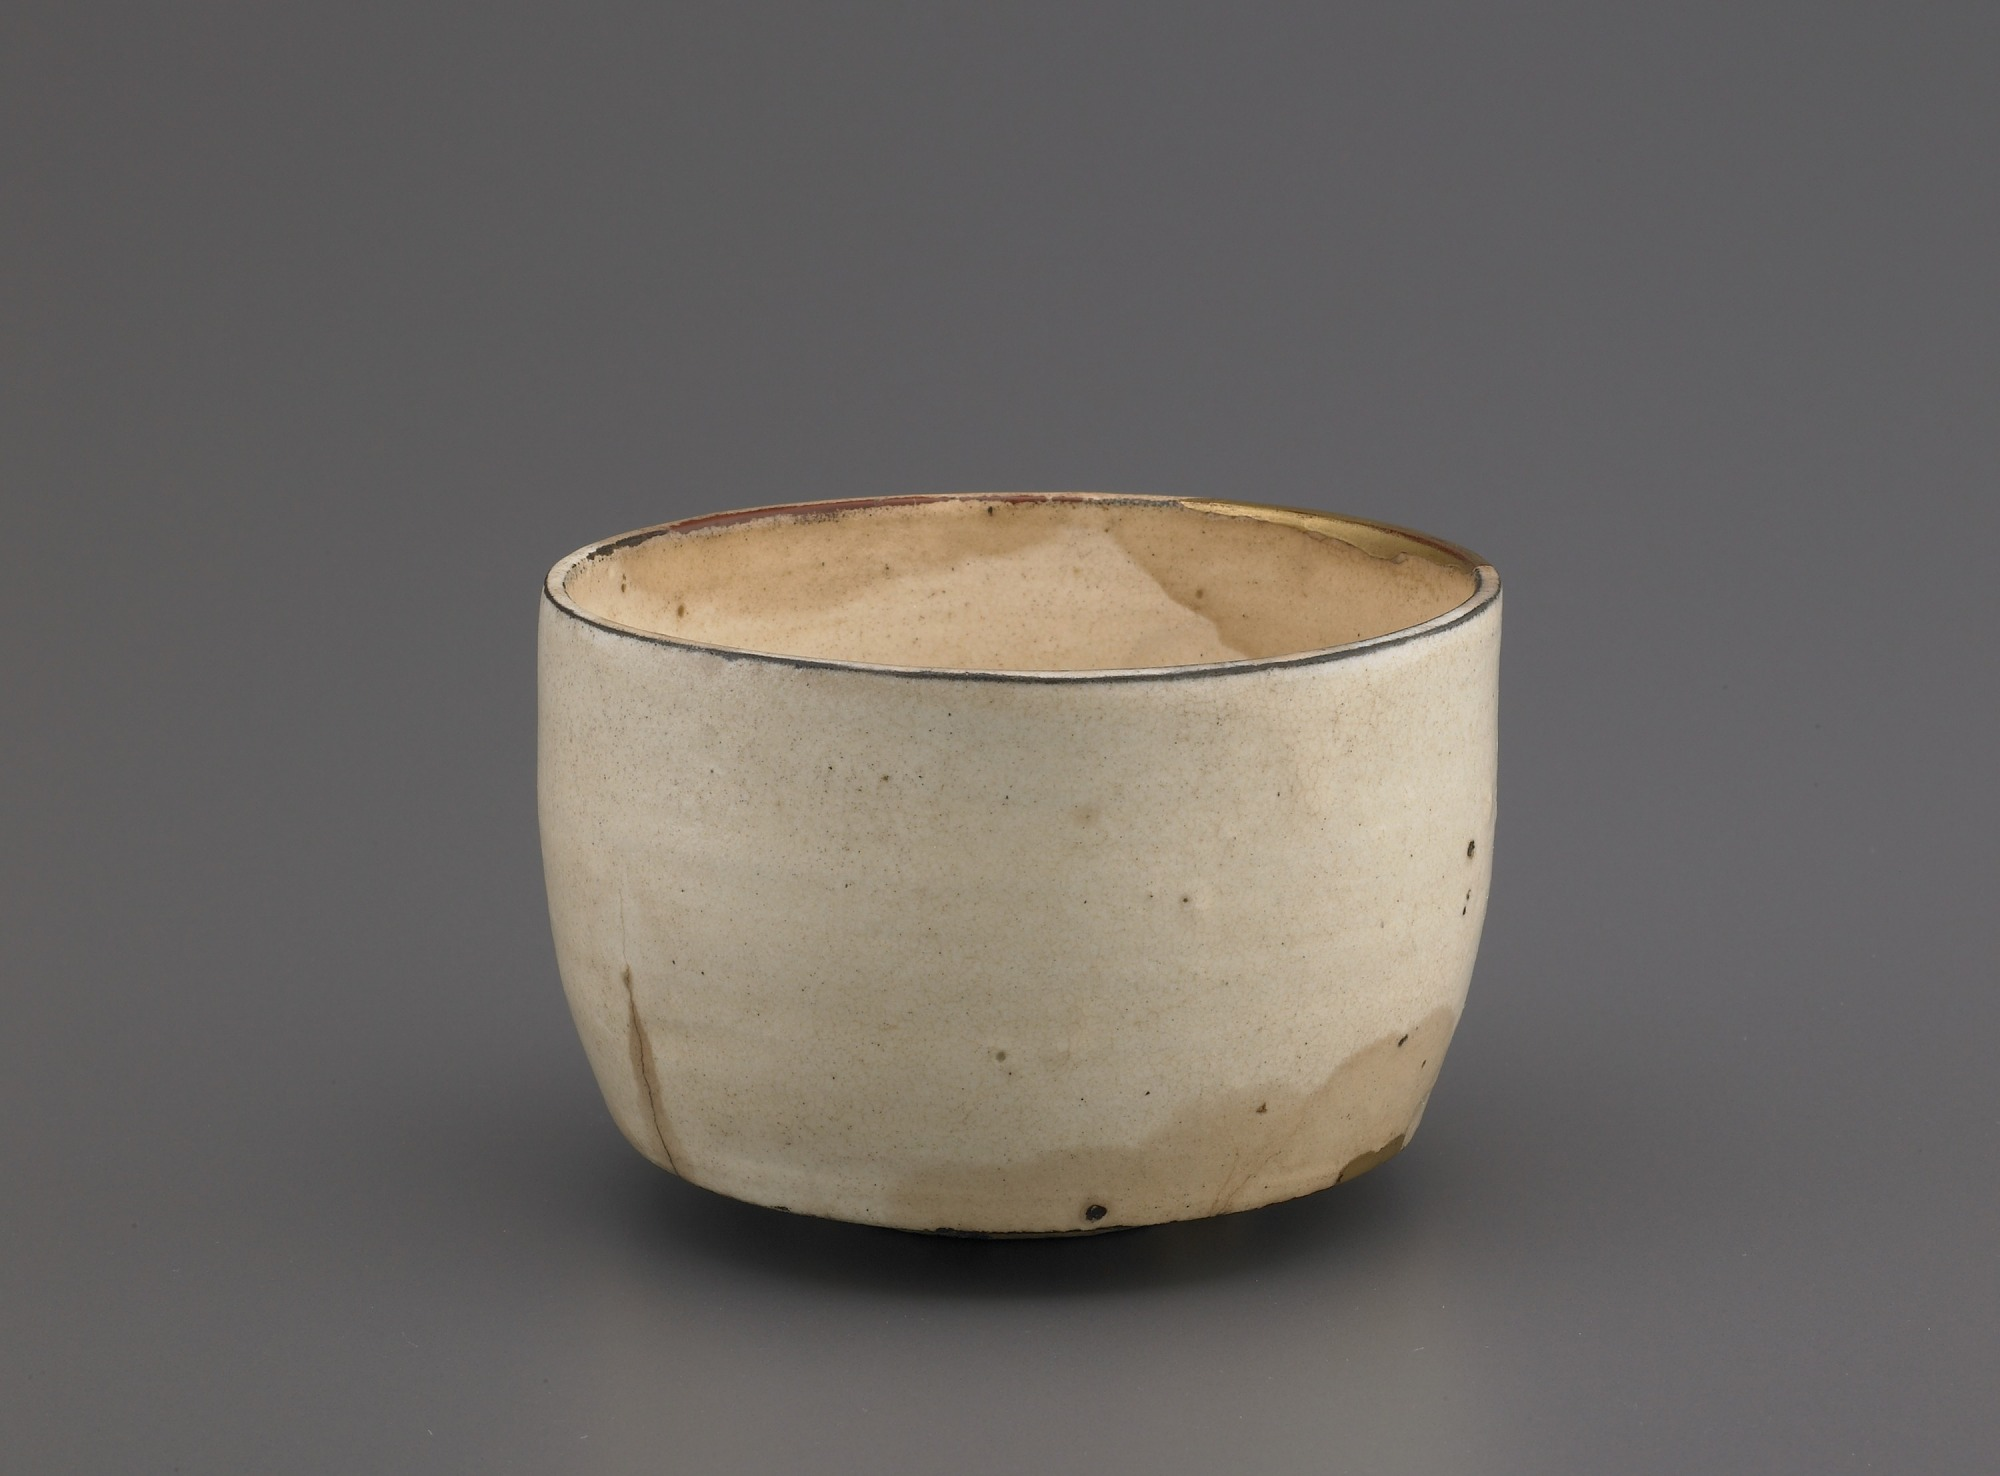 Cylindrical tea bowl, profile